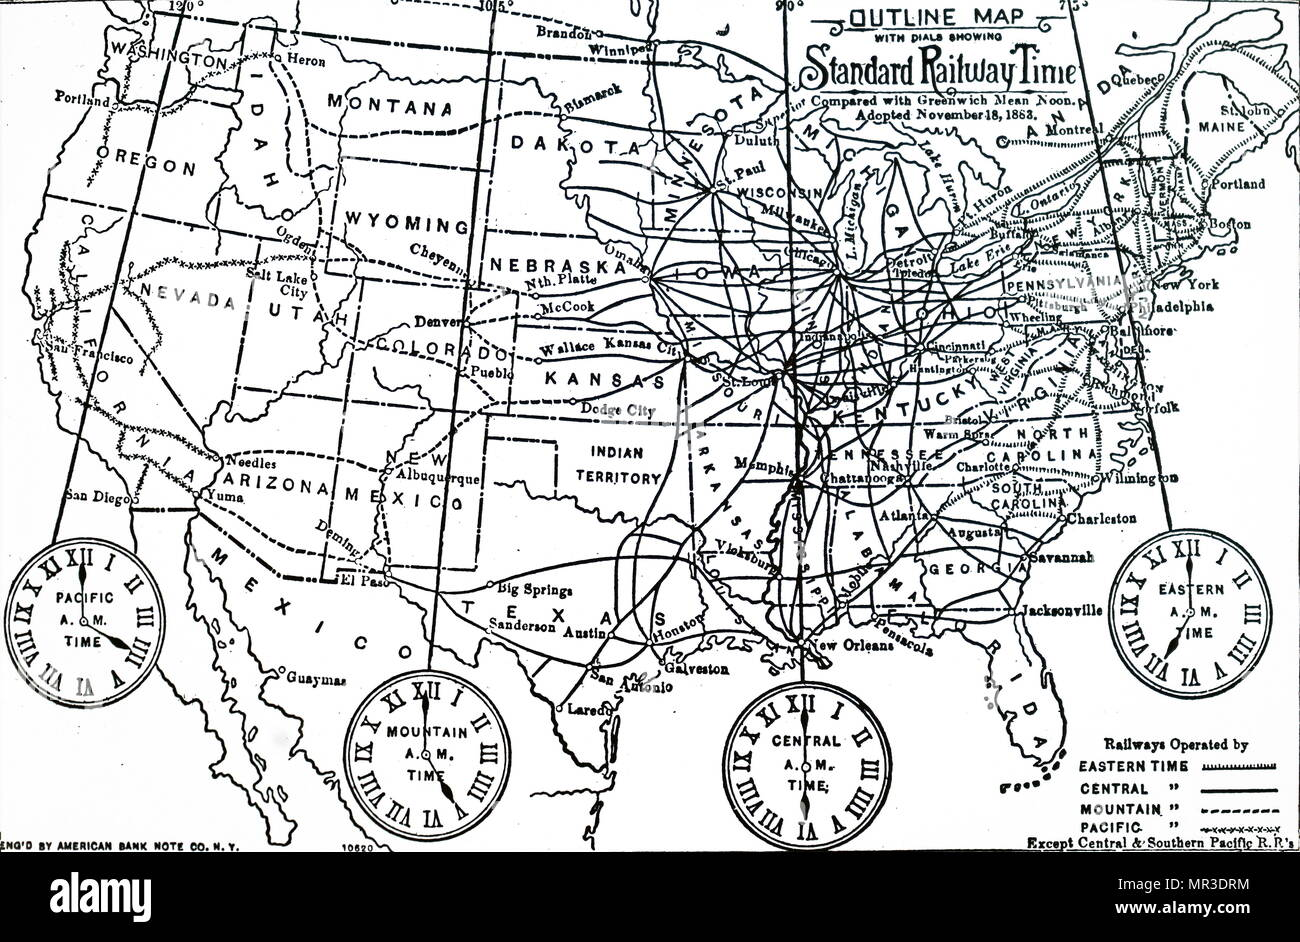 n. america time zone map, time and date map, tennessee central meridian map, asia time zone map, nebraska time zone map, world time zone map, us mountain time map, us canada time map, us time zone map, us daylight savings time map, zoomable time zone map, on map of us standard time